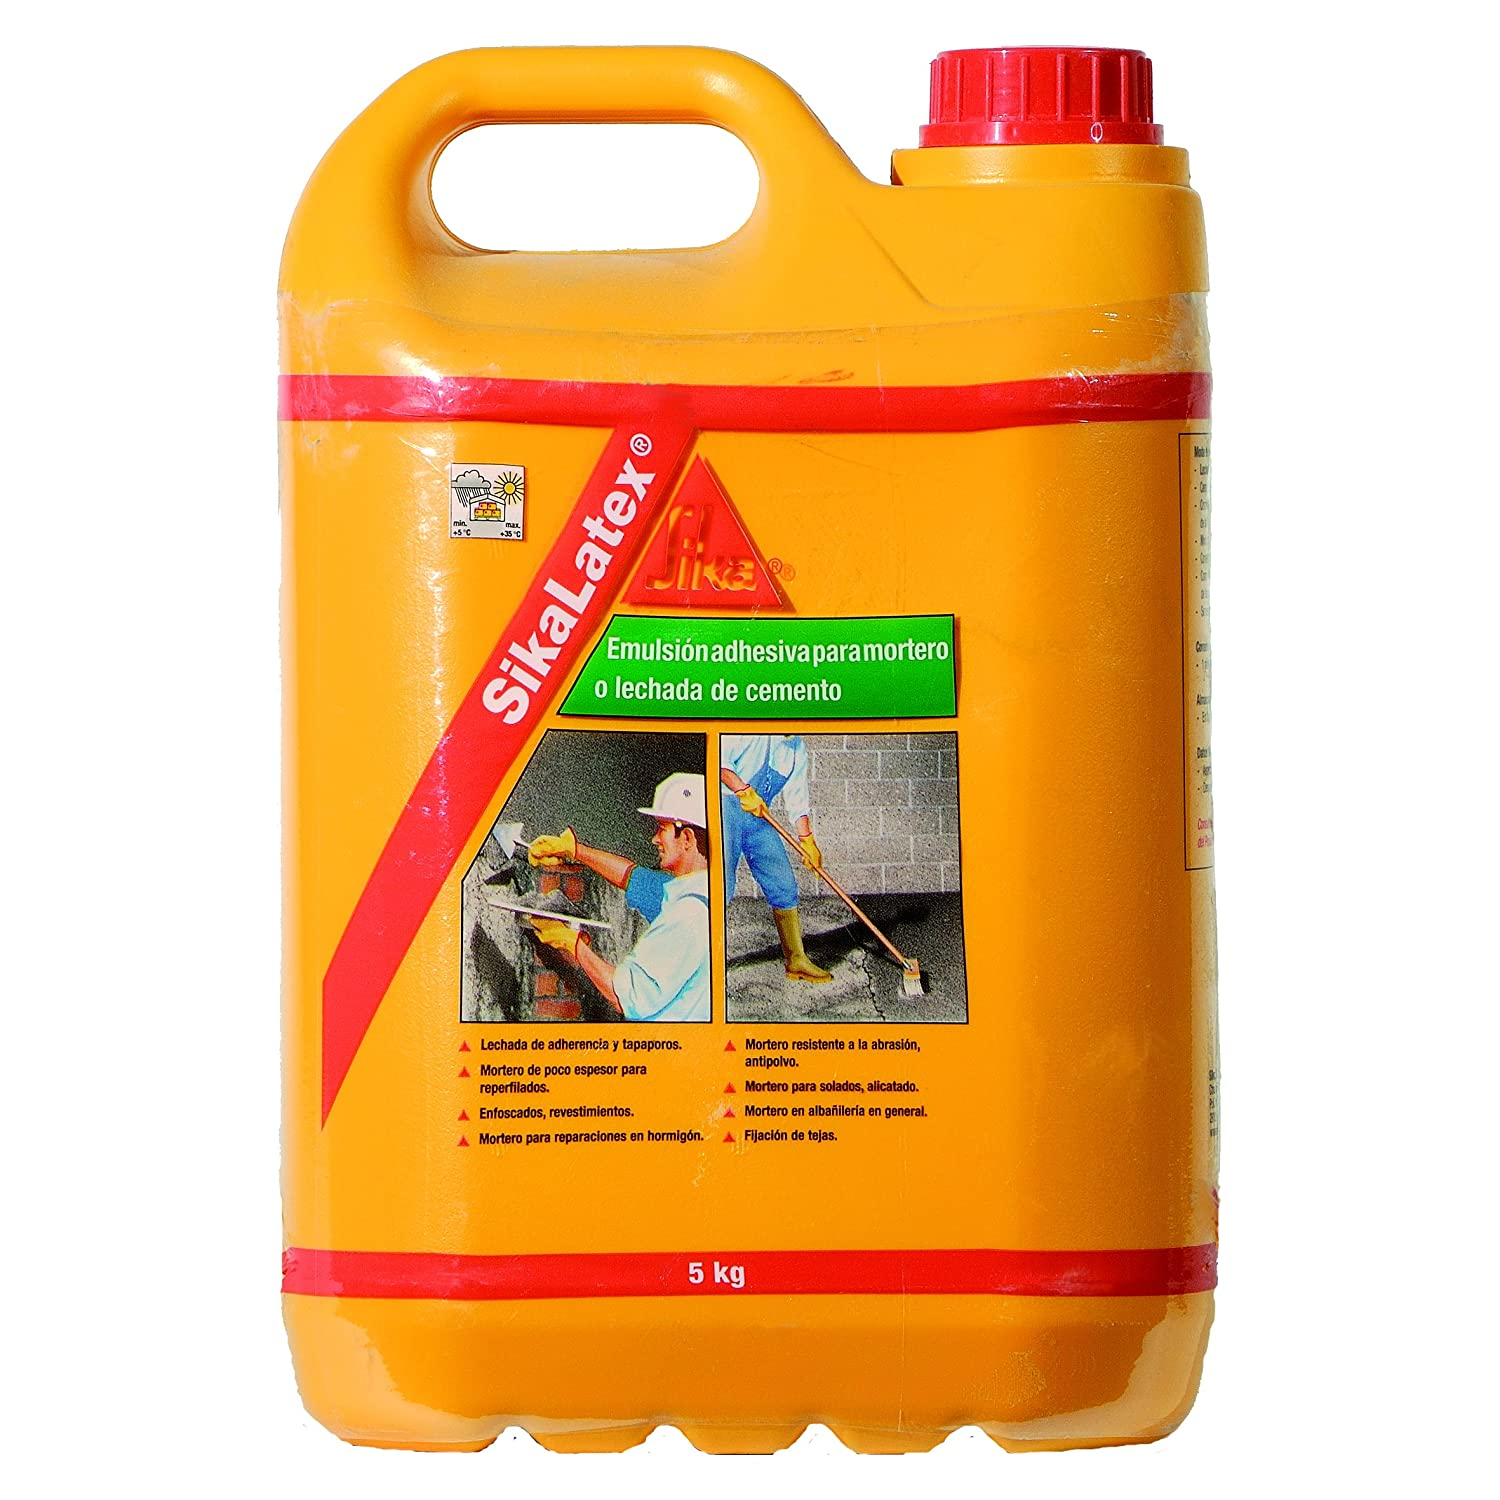 Sika Sika Latex - Emulsion Adhesive/A Latex White Carafe 5 kg:  Amazon.co.uk: DIY & Tools